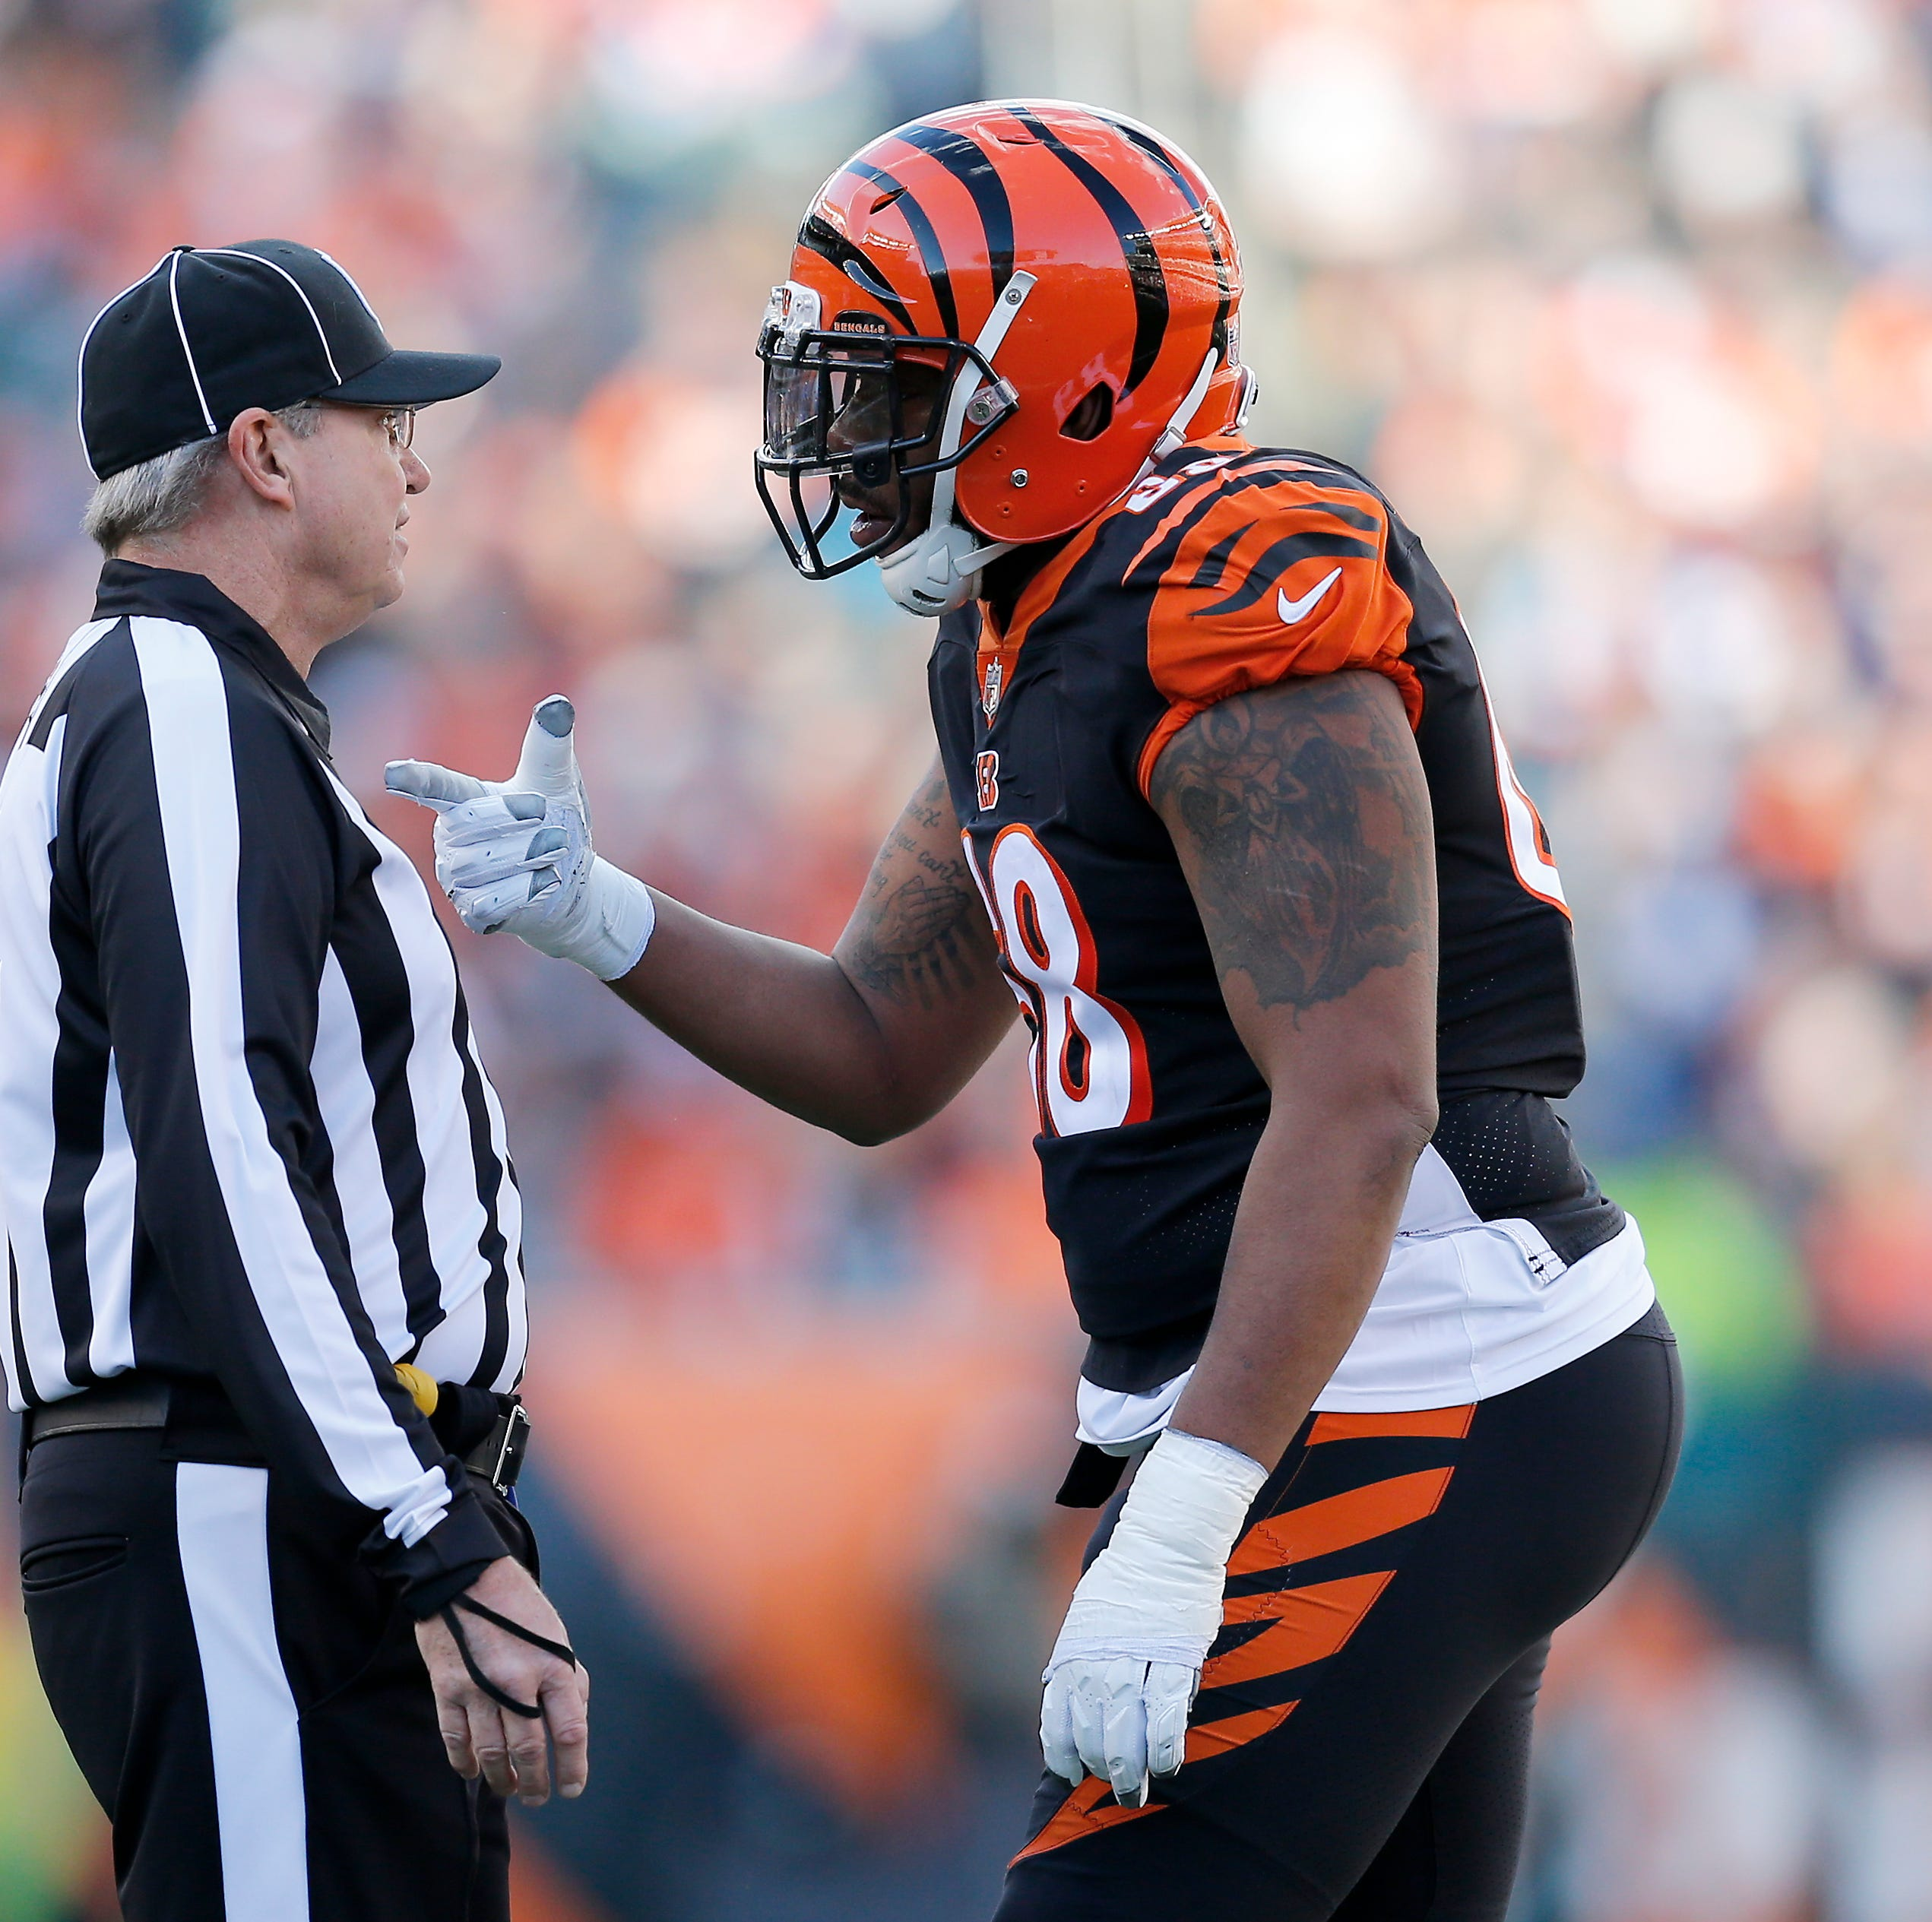 Cincinnati Bengals' OC Bill Lazor: Pre-snap penalties 'professionally embarrassing'